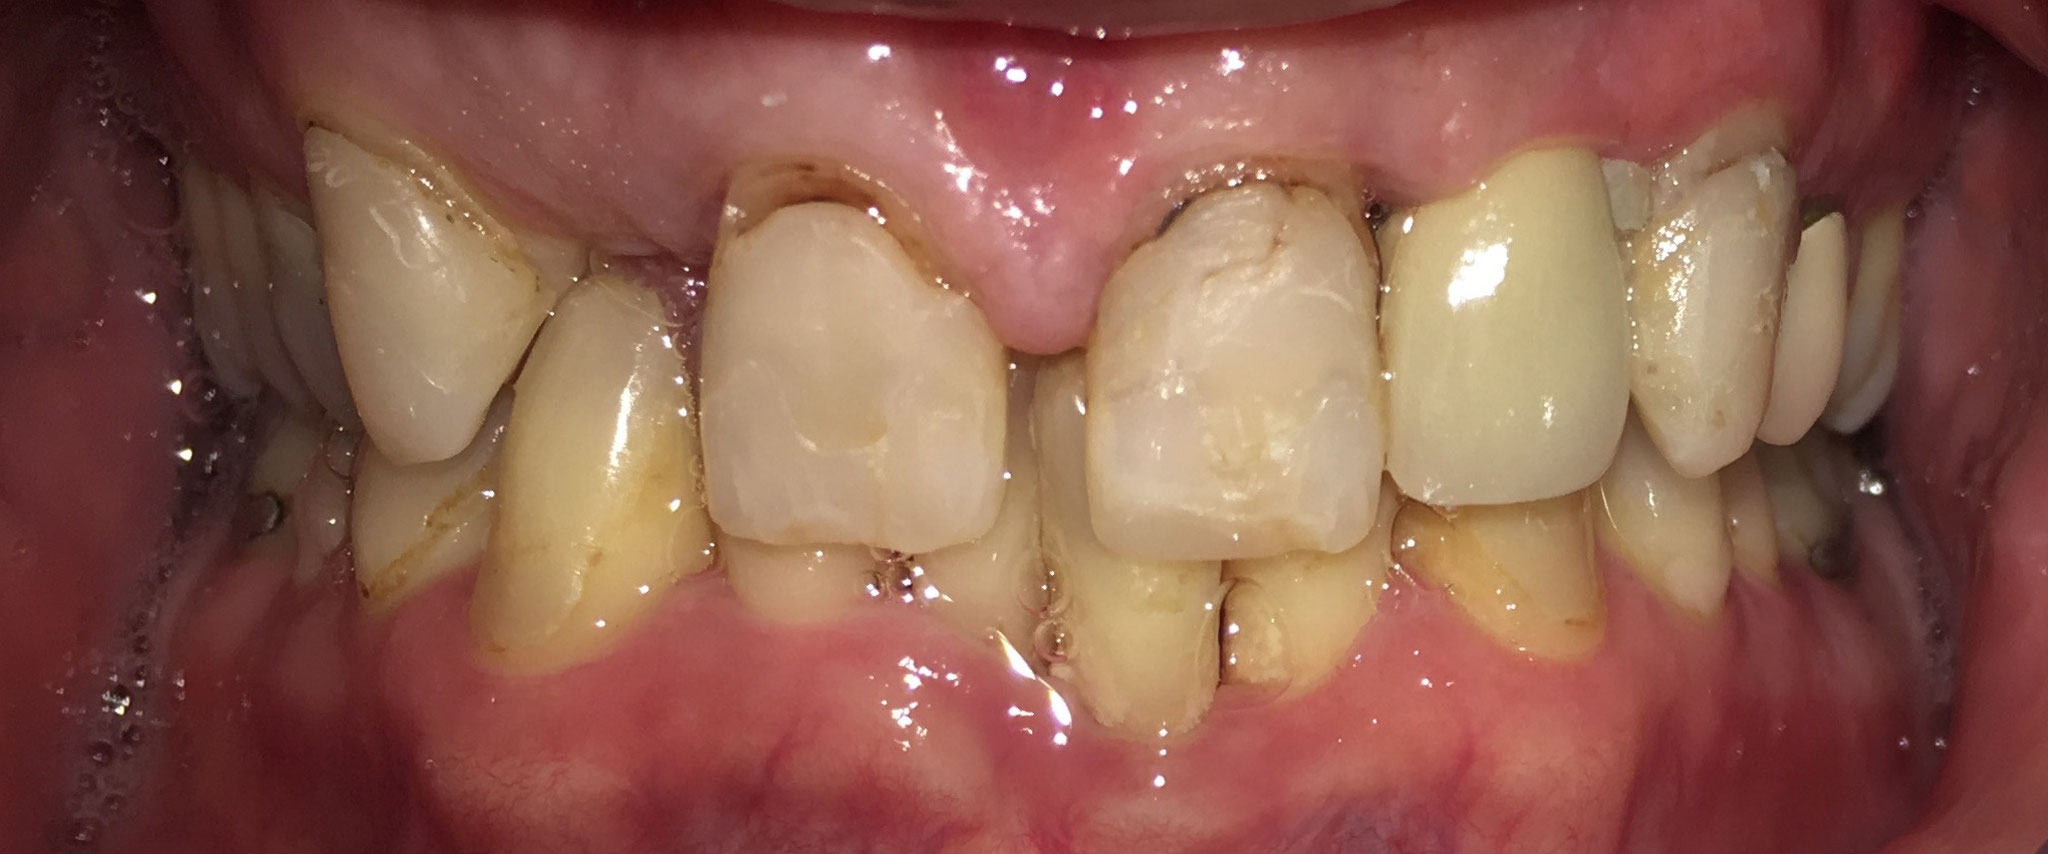 BEFORE | Full mouth crown and bridge case